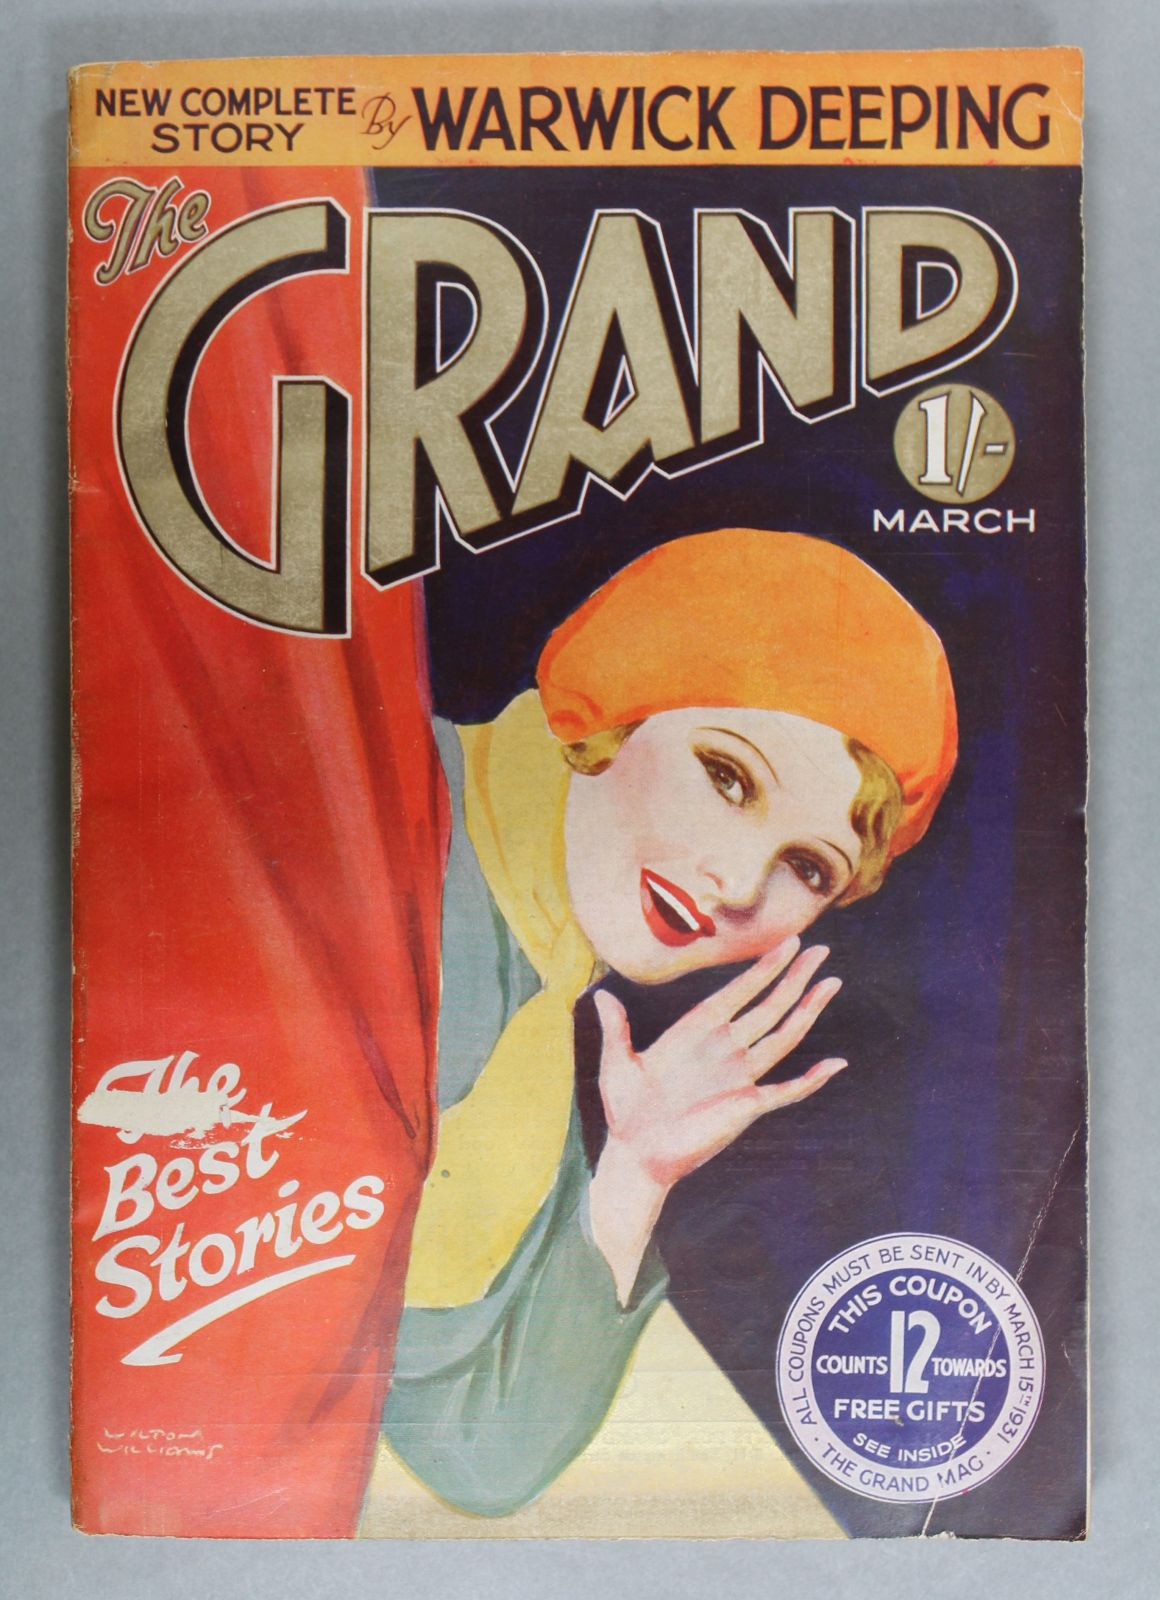 A magazine with an illustrated cover. It shows a woman learning around a curtain and cupping her hand to her mouth as though she were about to say something.